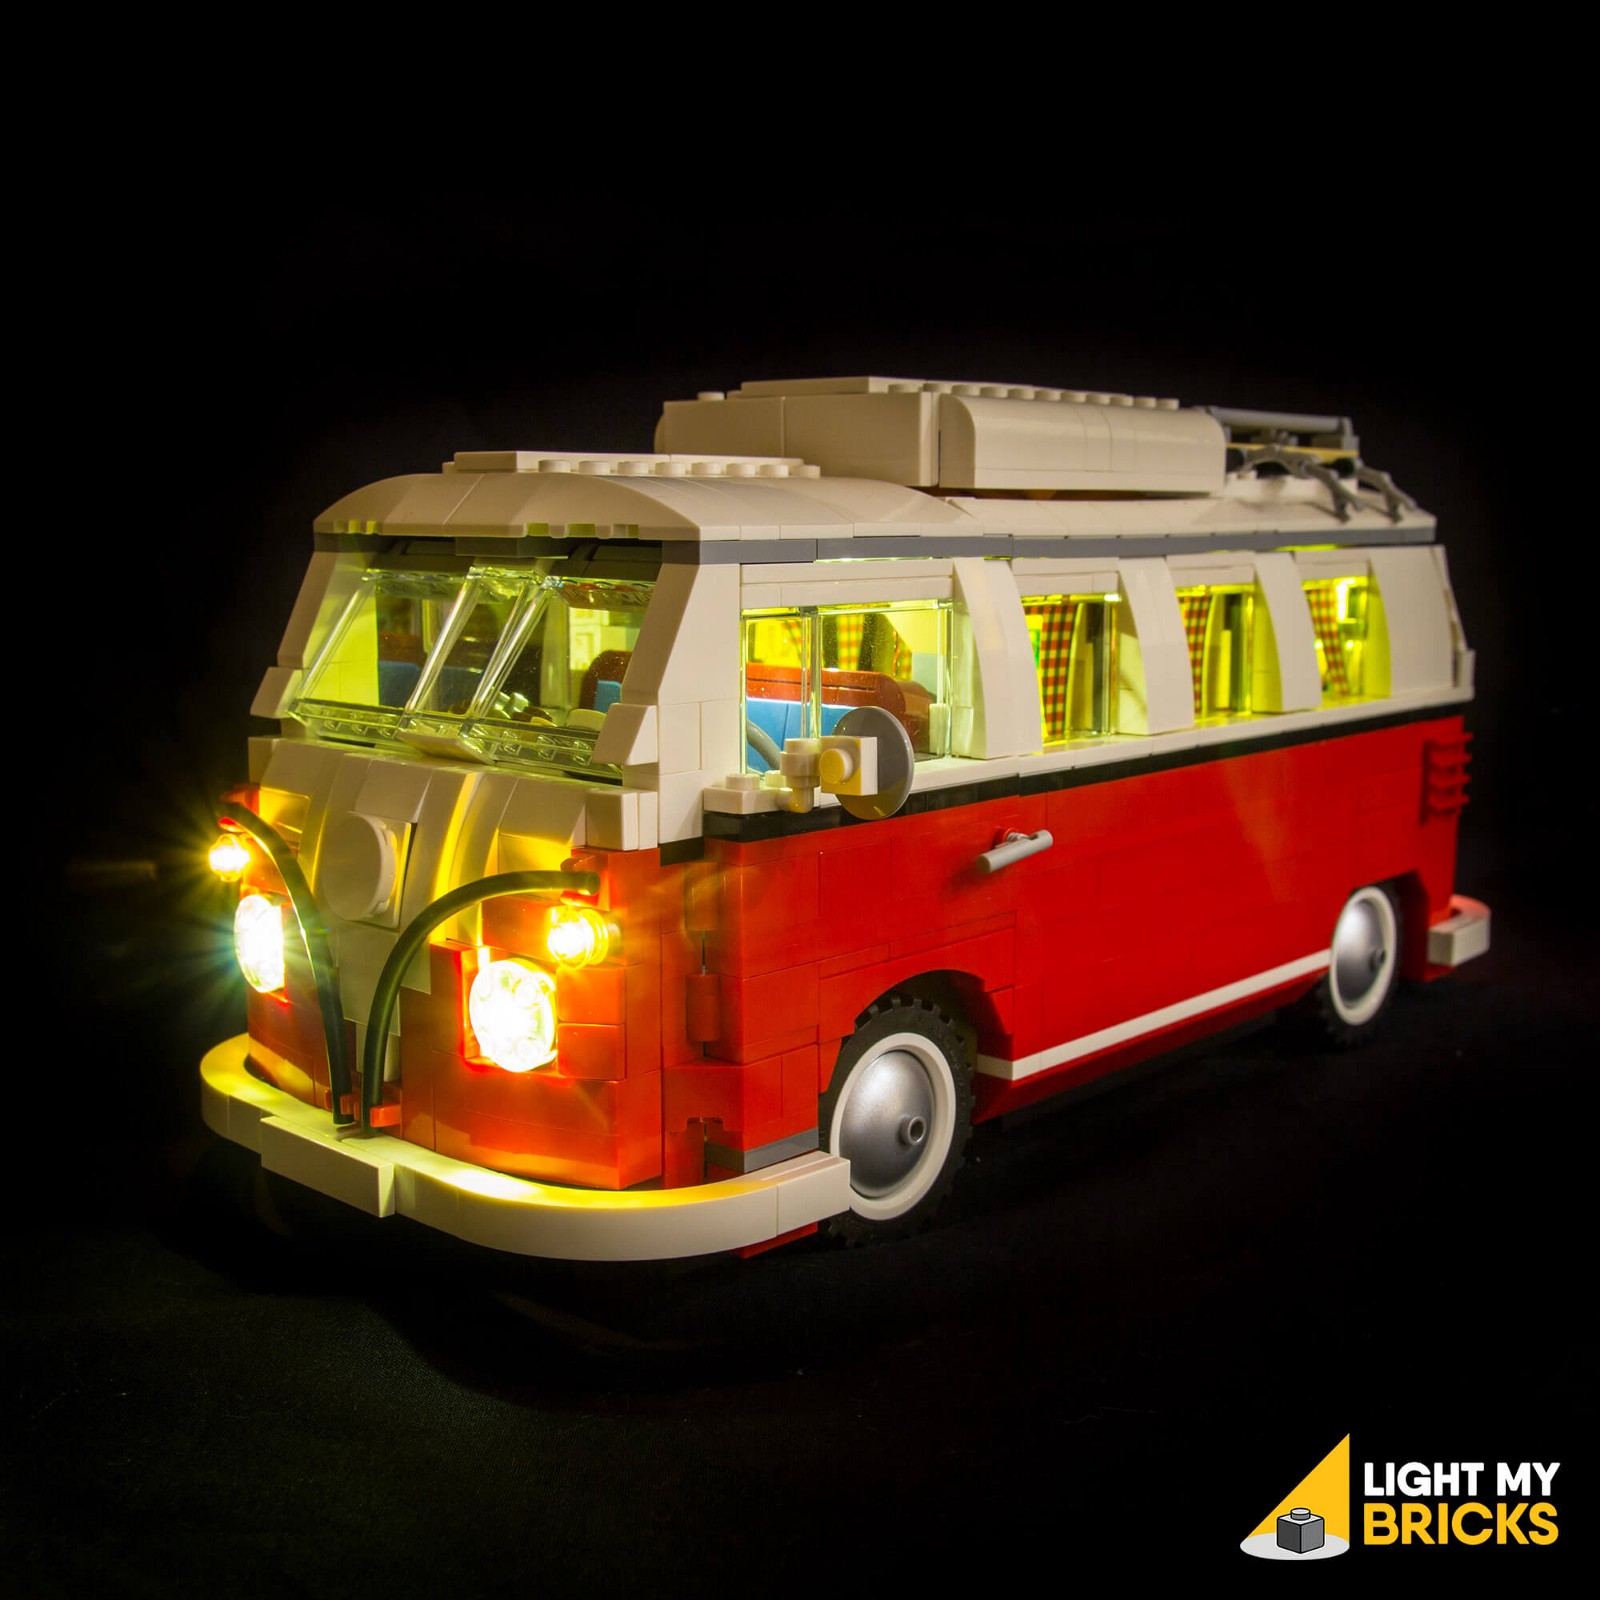 Van Til Verlichting Light My Bricks Volkswagen T1 Camper Van Led Lighting Kit